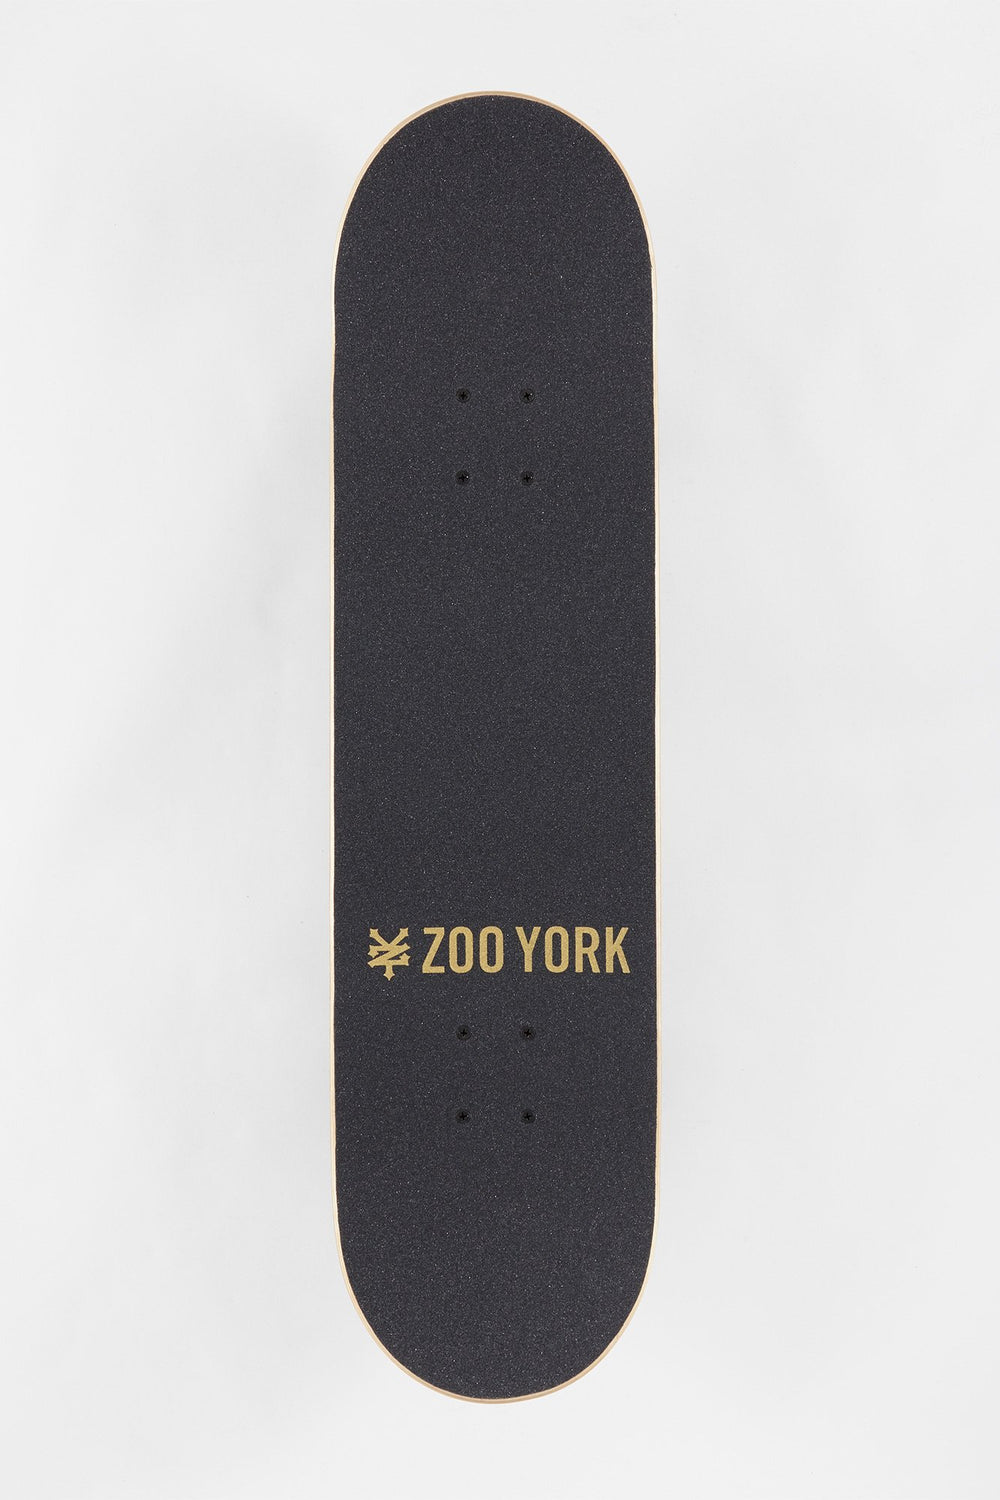 Zoo York Classic Gold Tag Skateboard 8.25